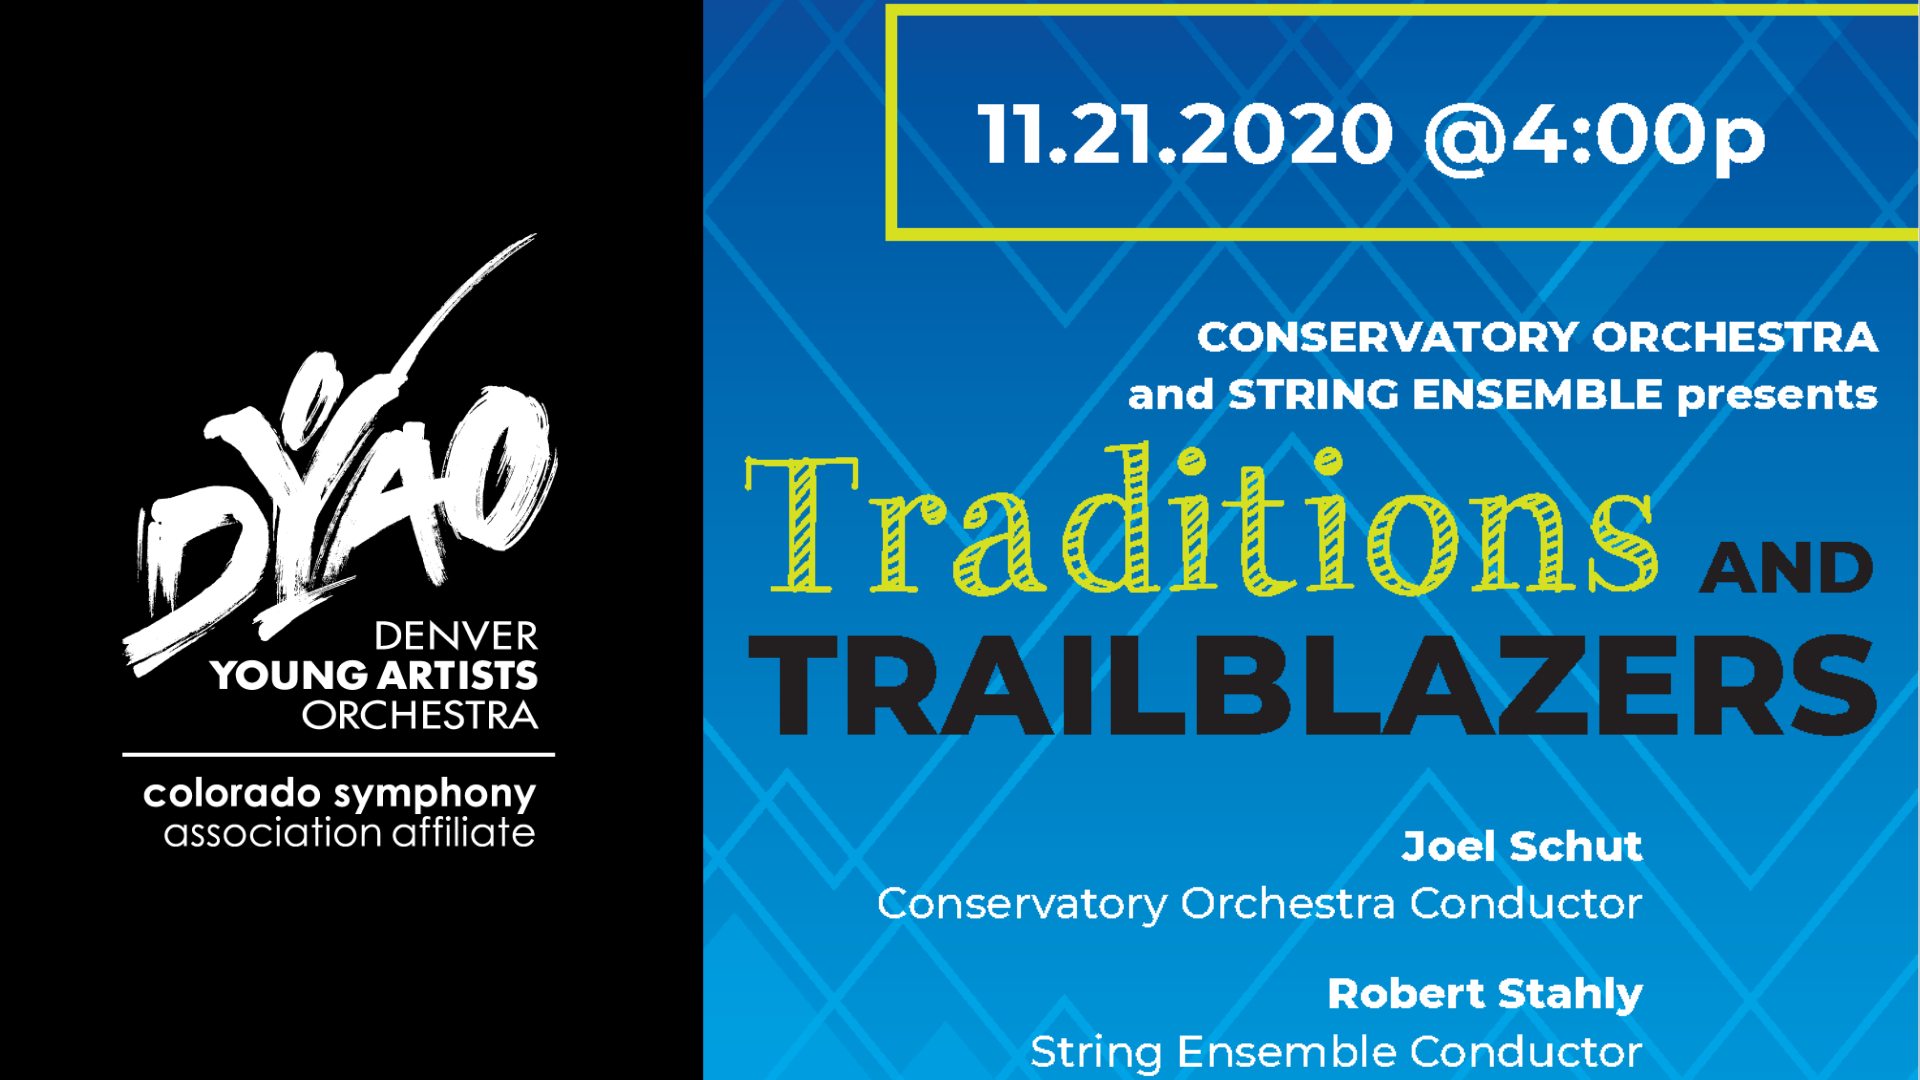 Conservatory Orchestra and String Ensemble present Tradition & Trailblazers